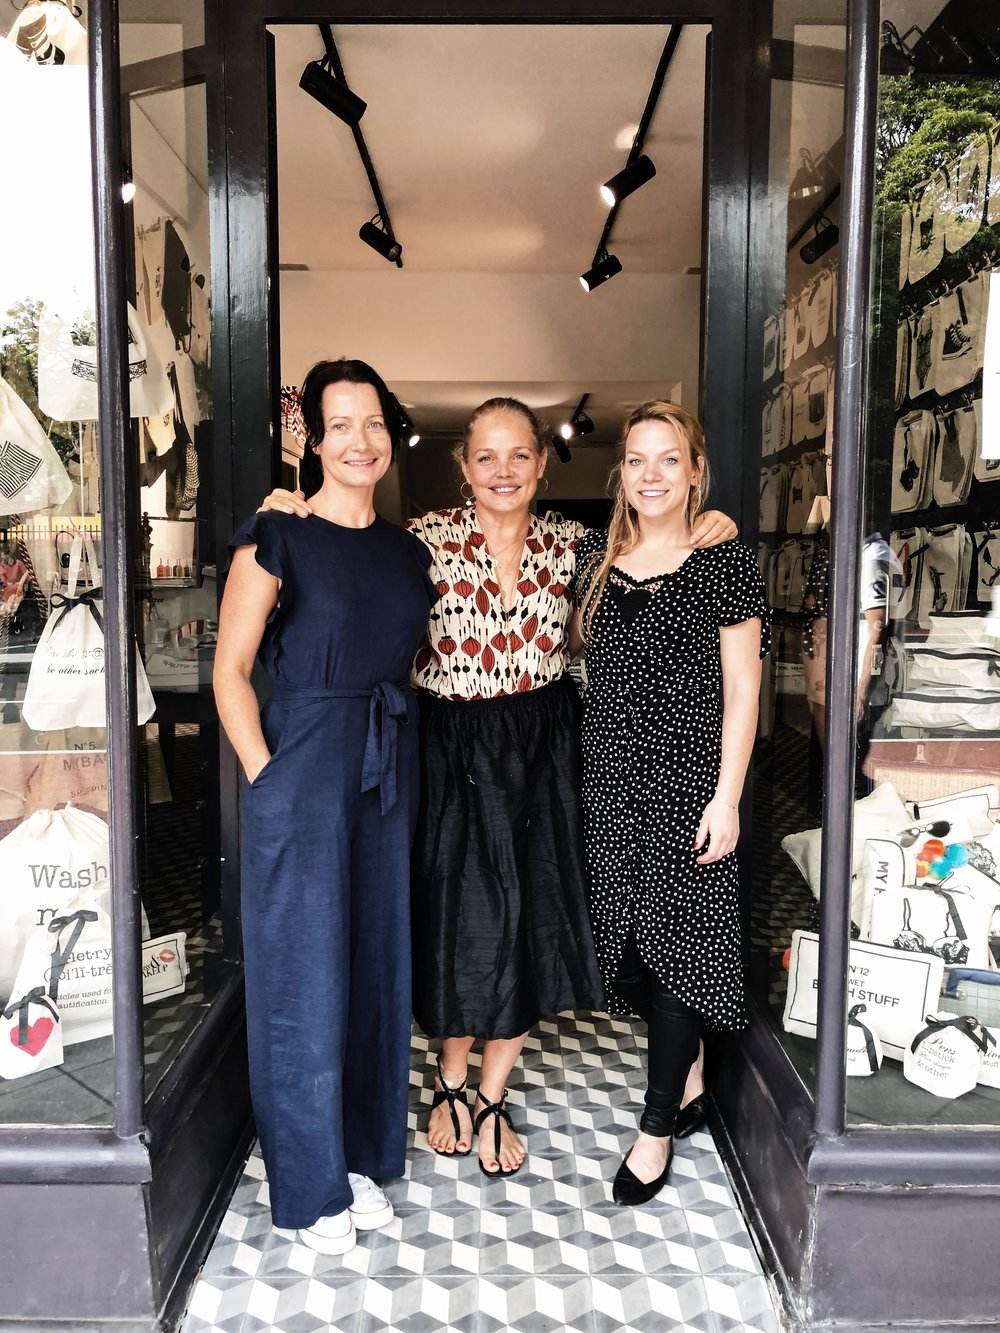 From left: Jenny Grimsgard, Bag-all Australia CEO, Jennifer Jansch, Bag-all Founder and CEO, Julia Arhammar, Bag-all VP and Director of Sales